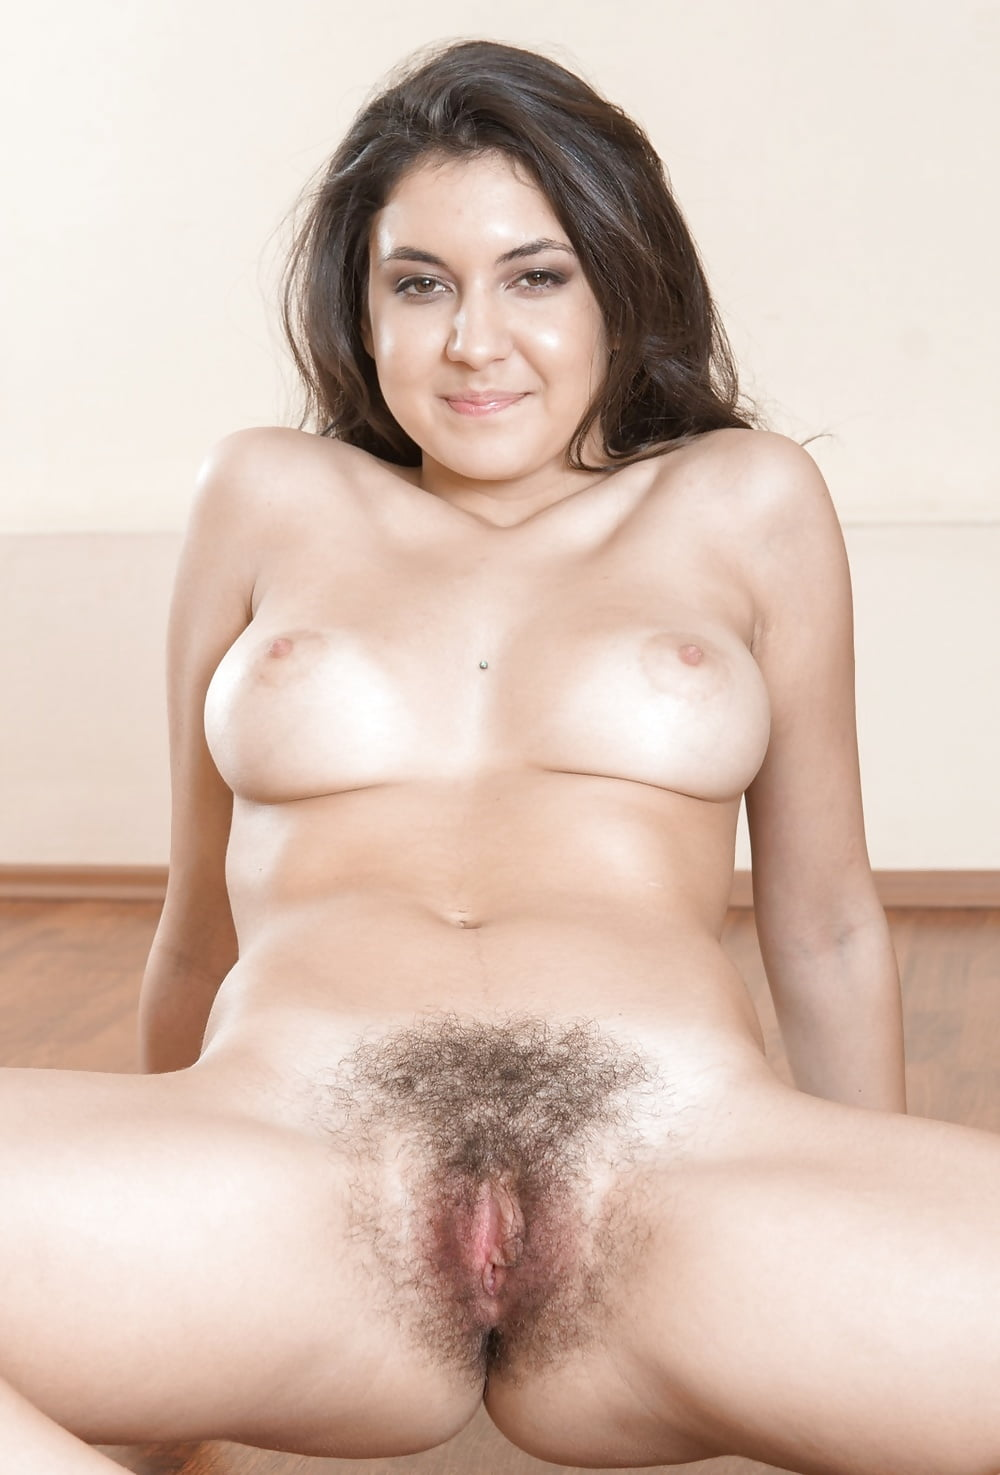 Light skin mature carrying big titties and a hairy pussy - 3 part 5